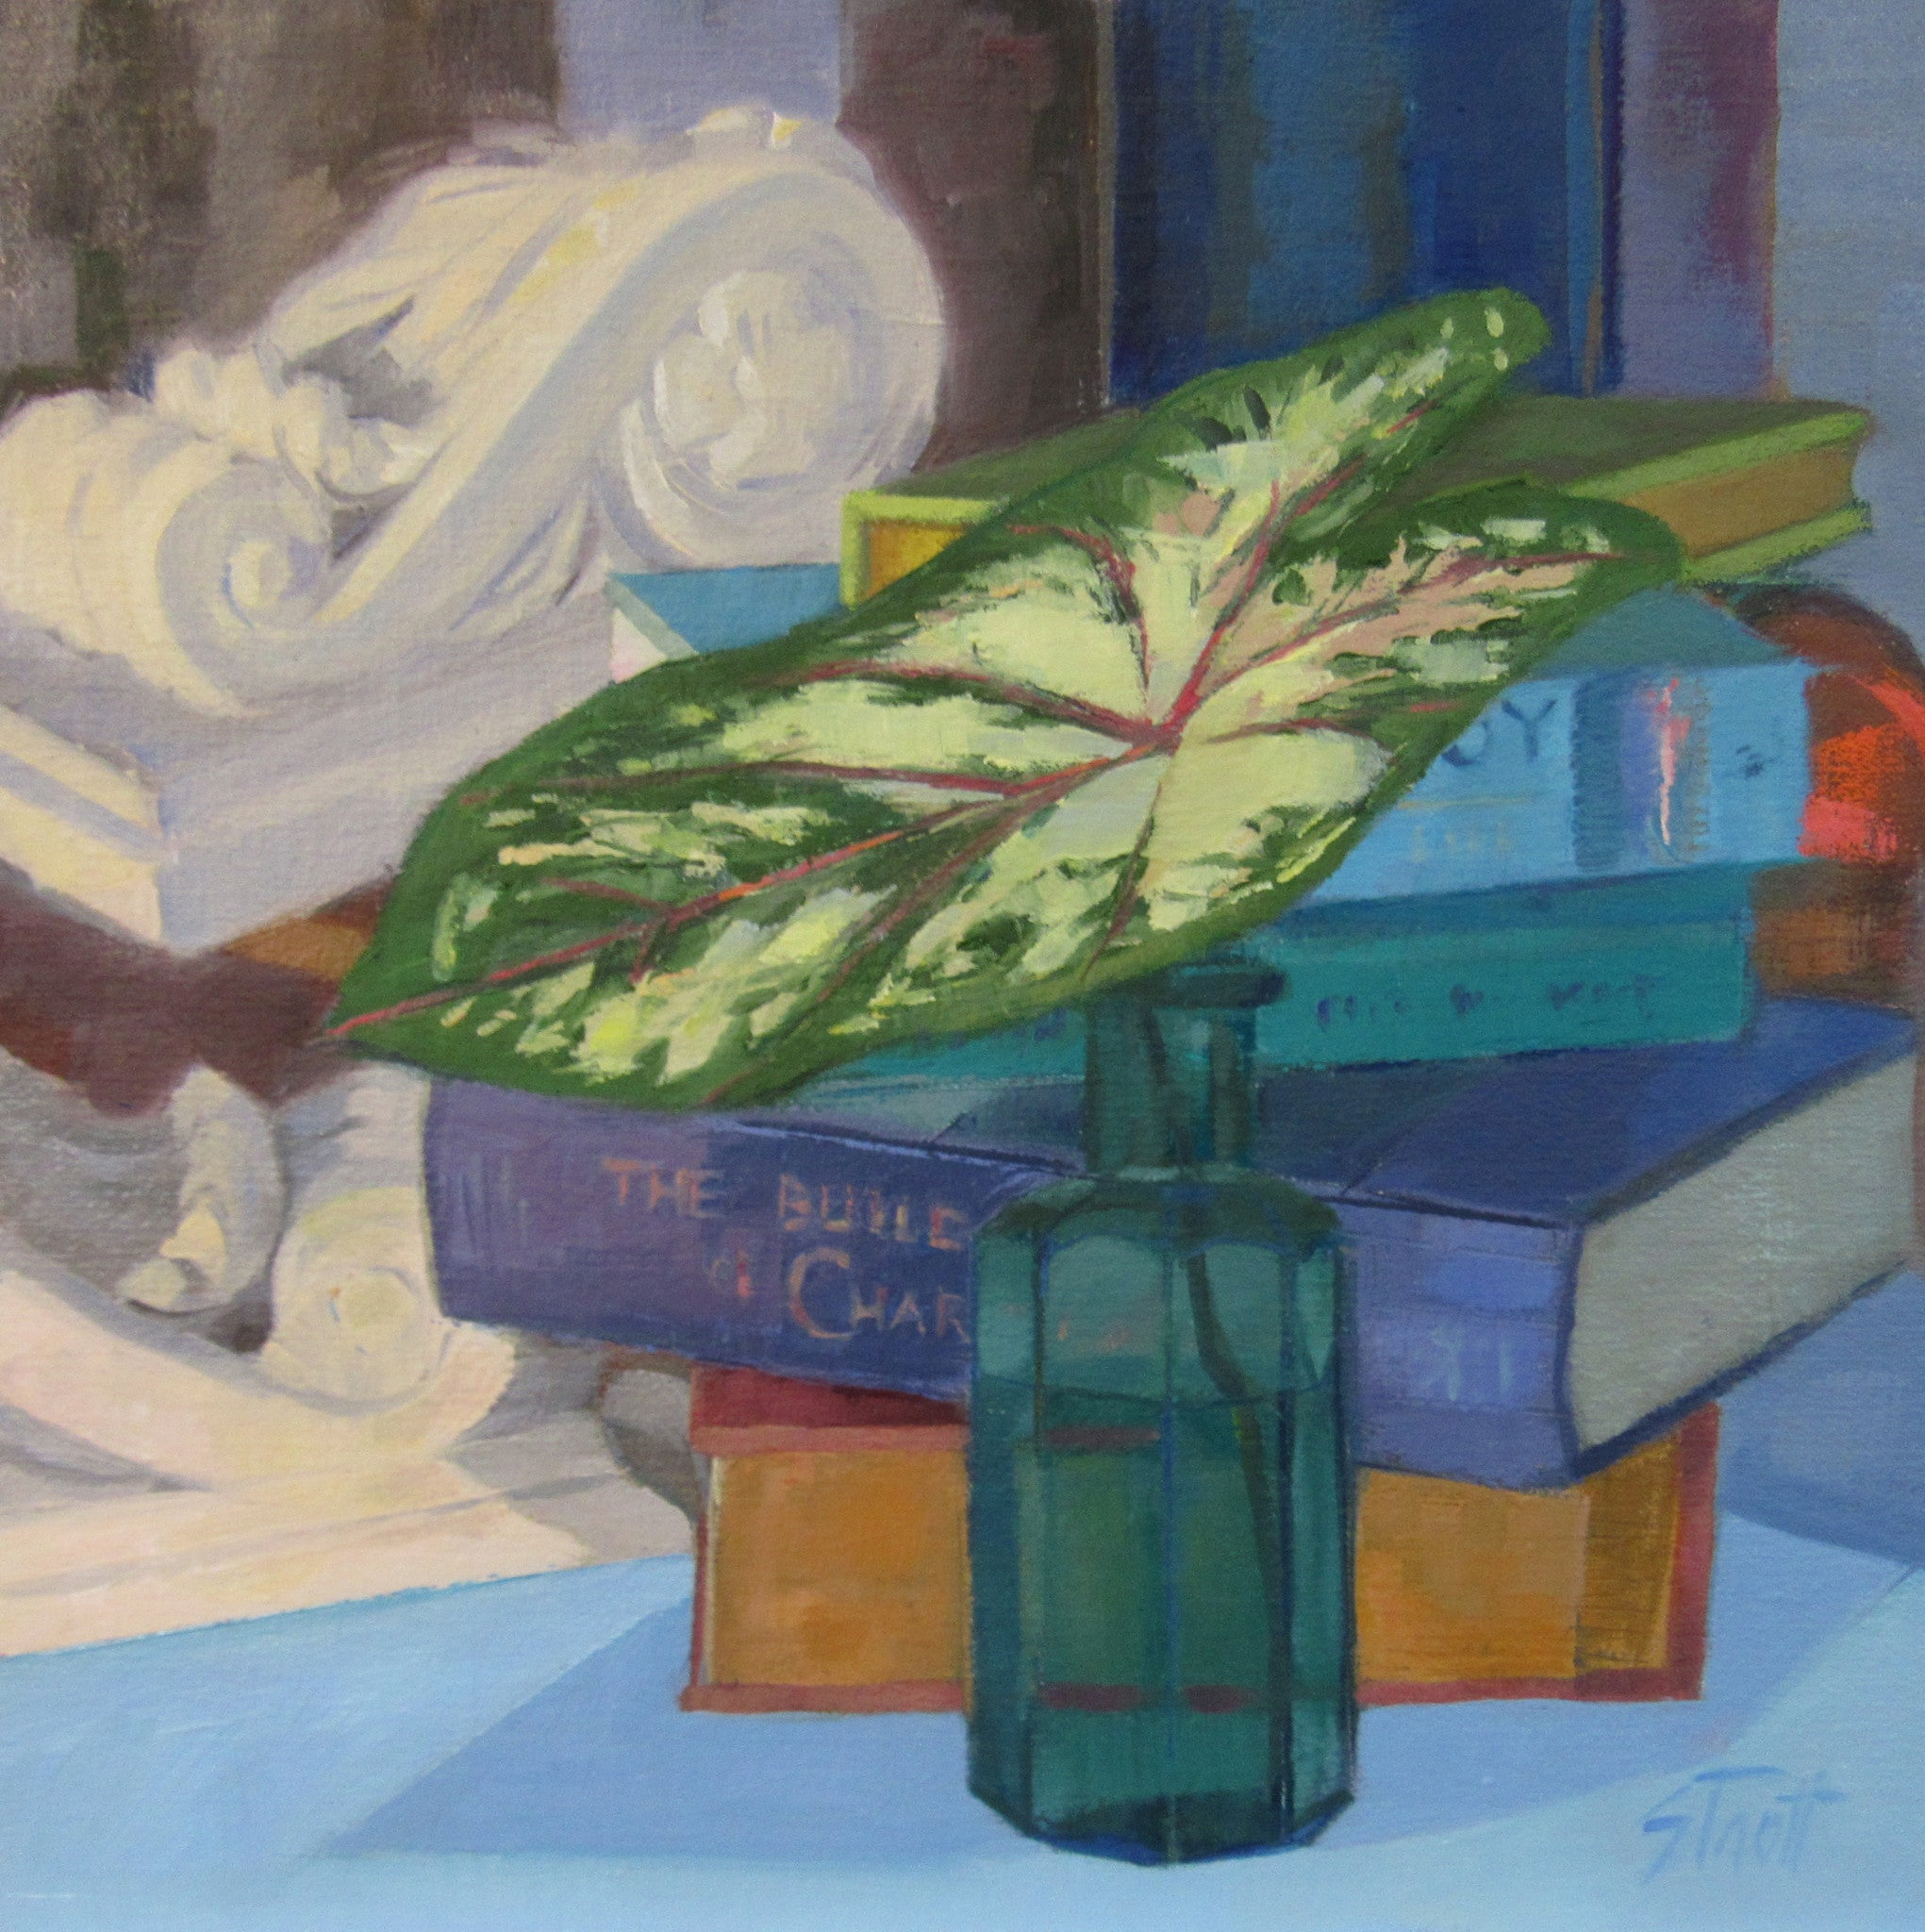 Caladium and Books